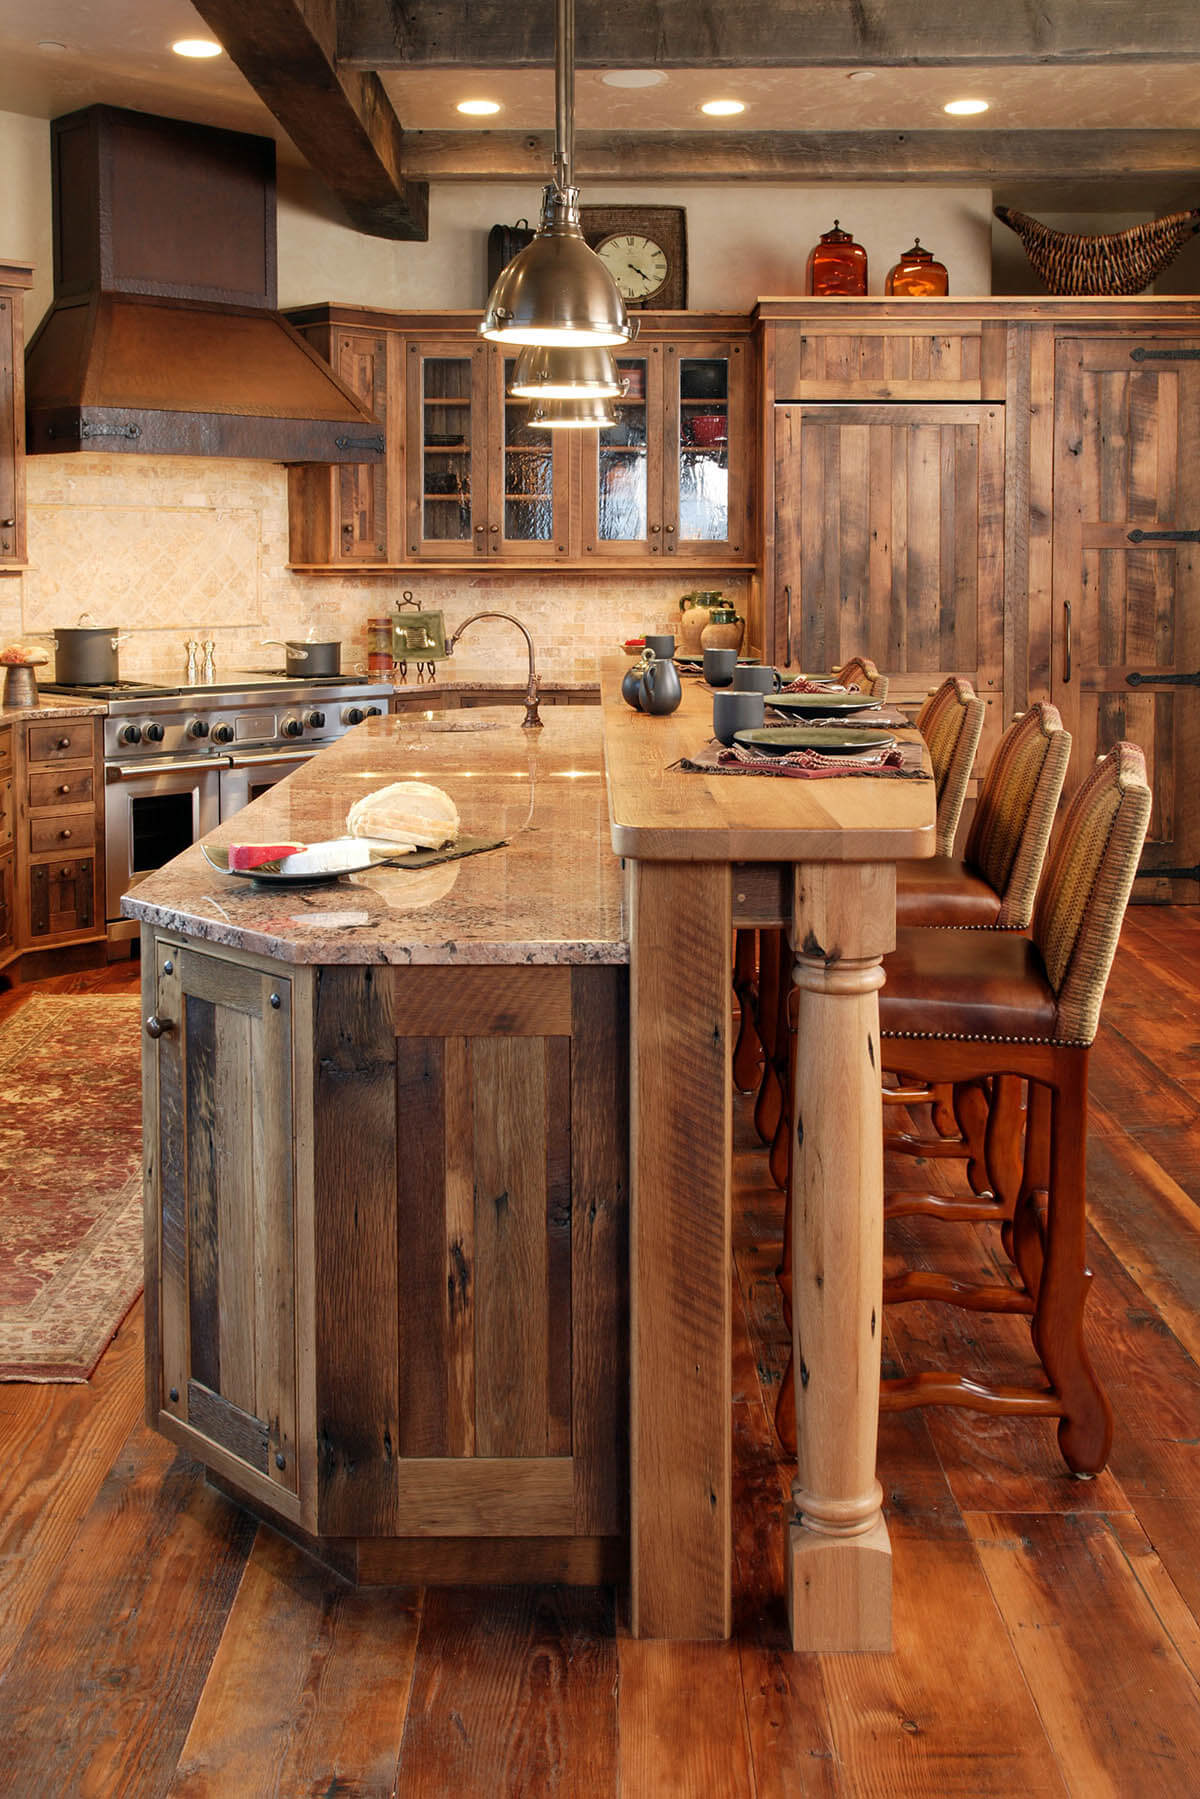 11. A Walk In The Woods Paneled Kitchen